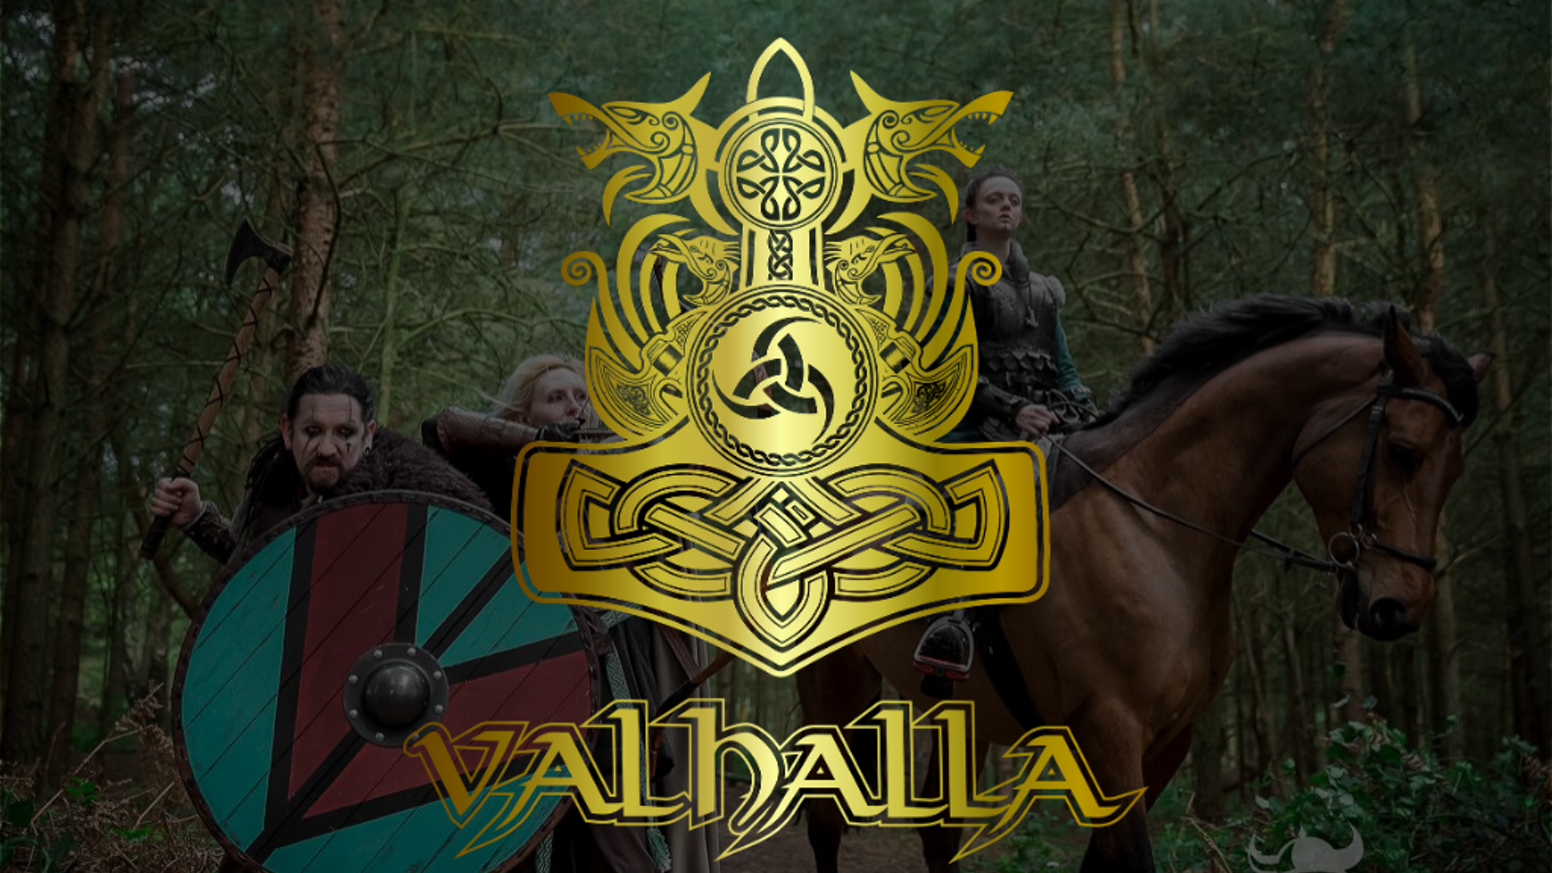 A UK Viking Festival bringing Valhalla on Earth! Join us for a weekend of feasting, blacksmithing, archery, jewelry casting &more...